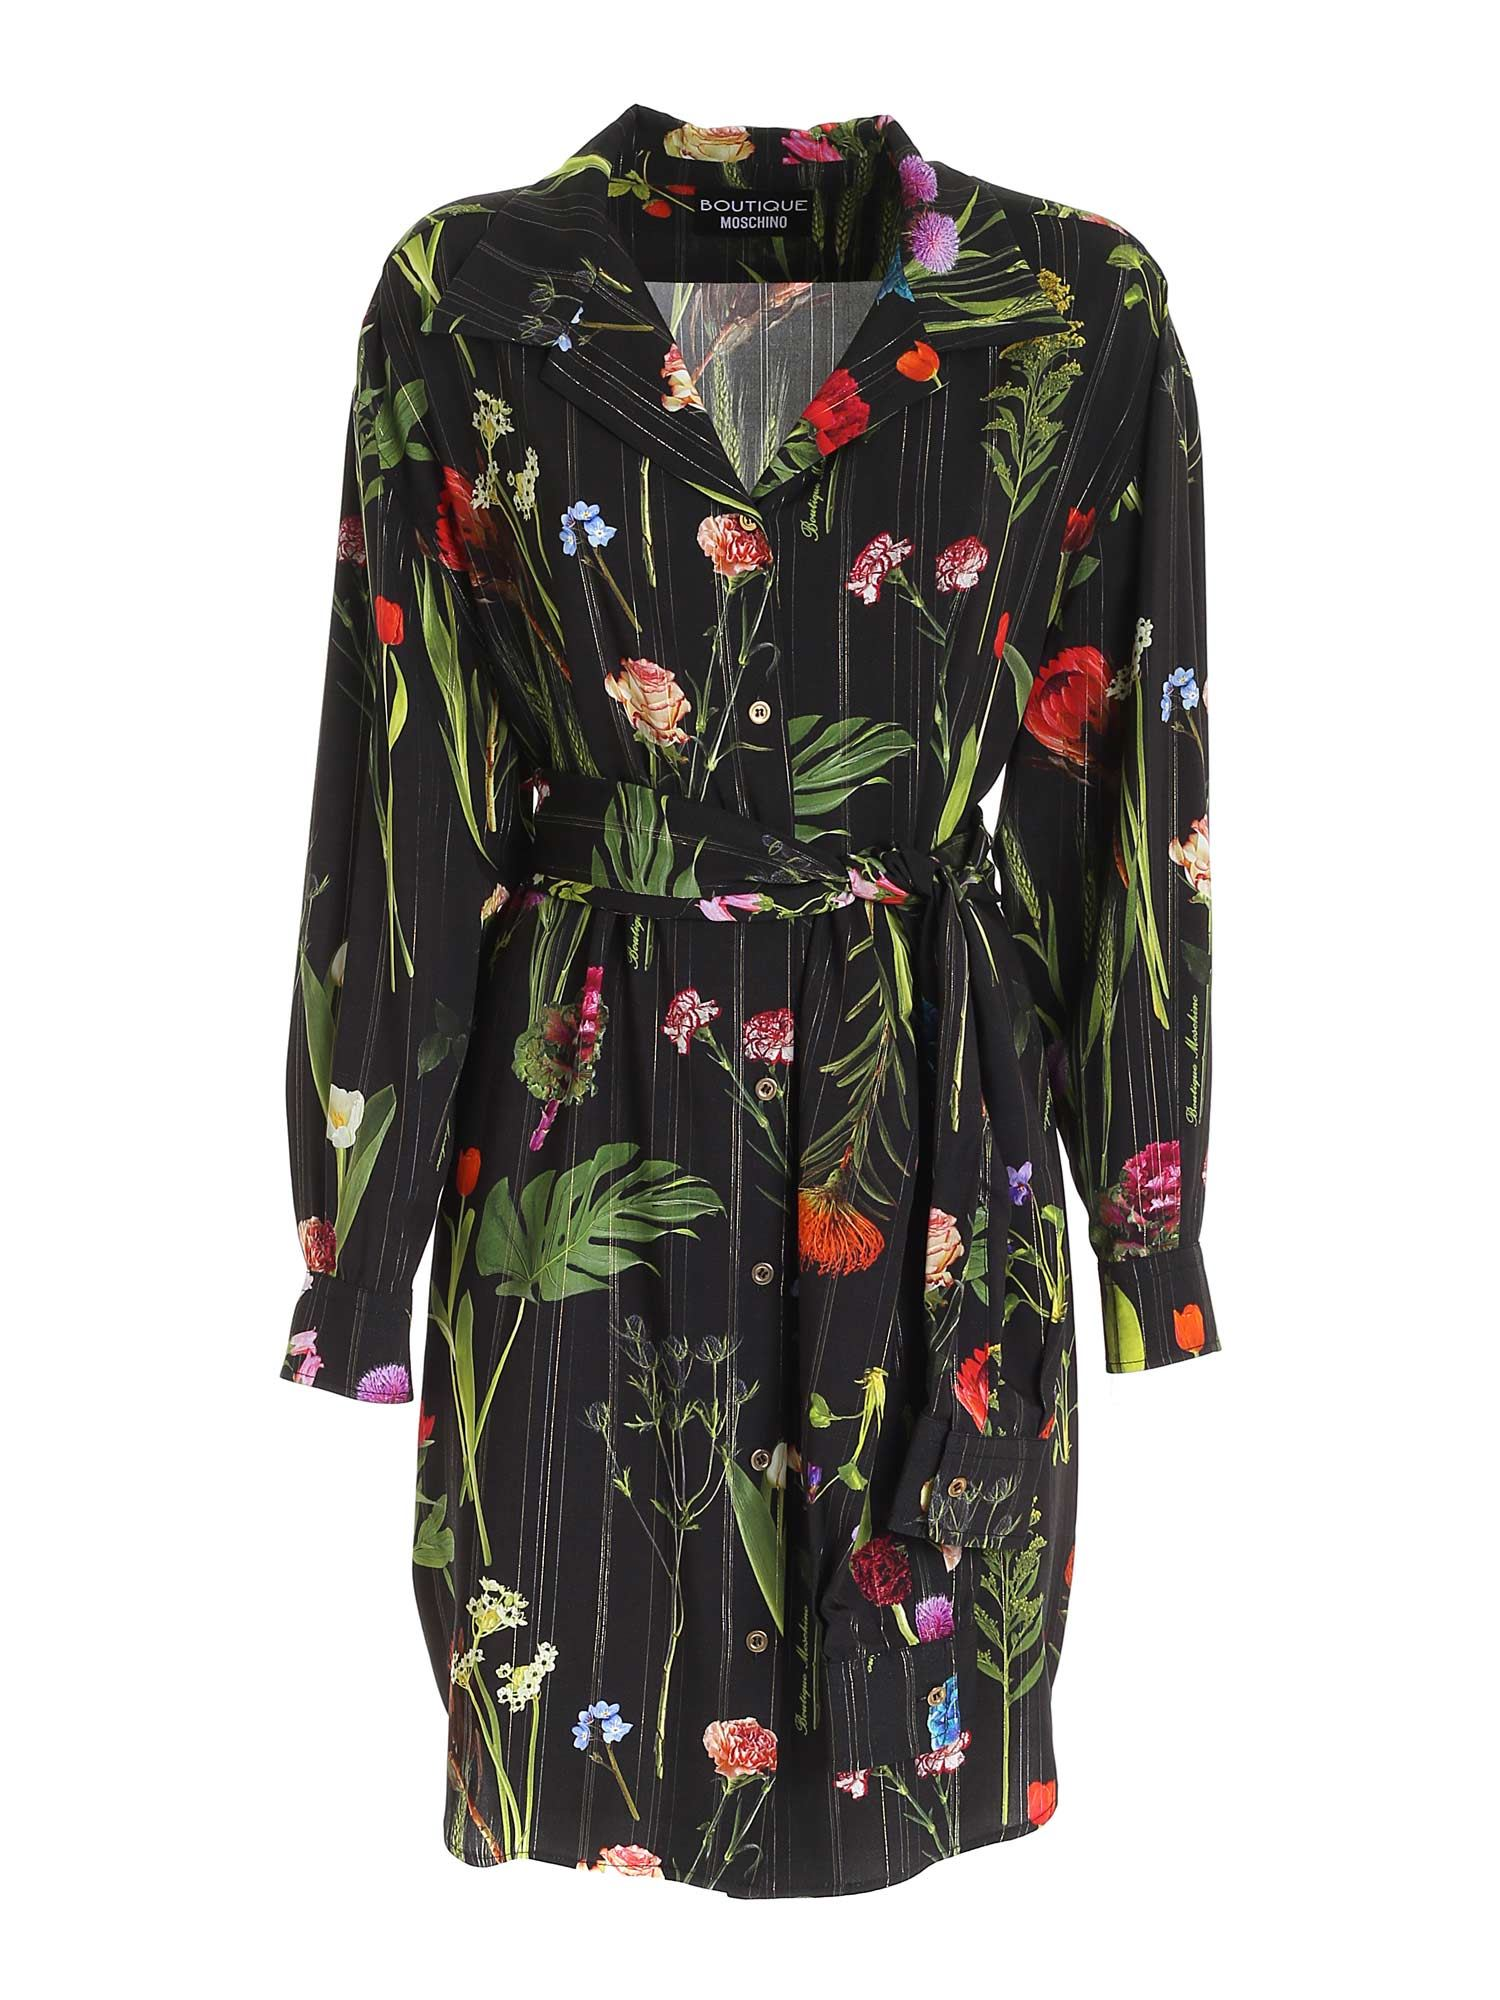 Moschino Boutique MOSCHINO BOUTIQUE FLORAL PRINT SHIRT IN BLACK